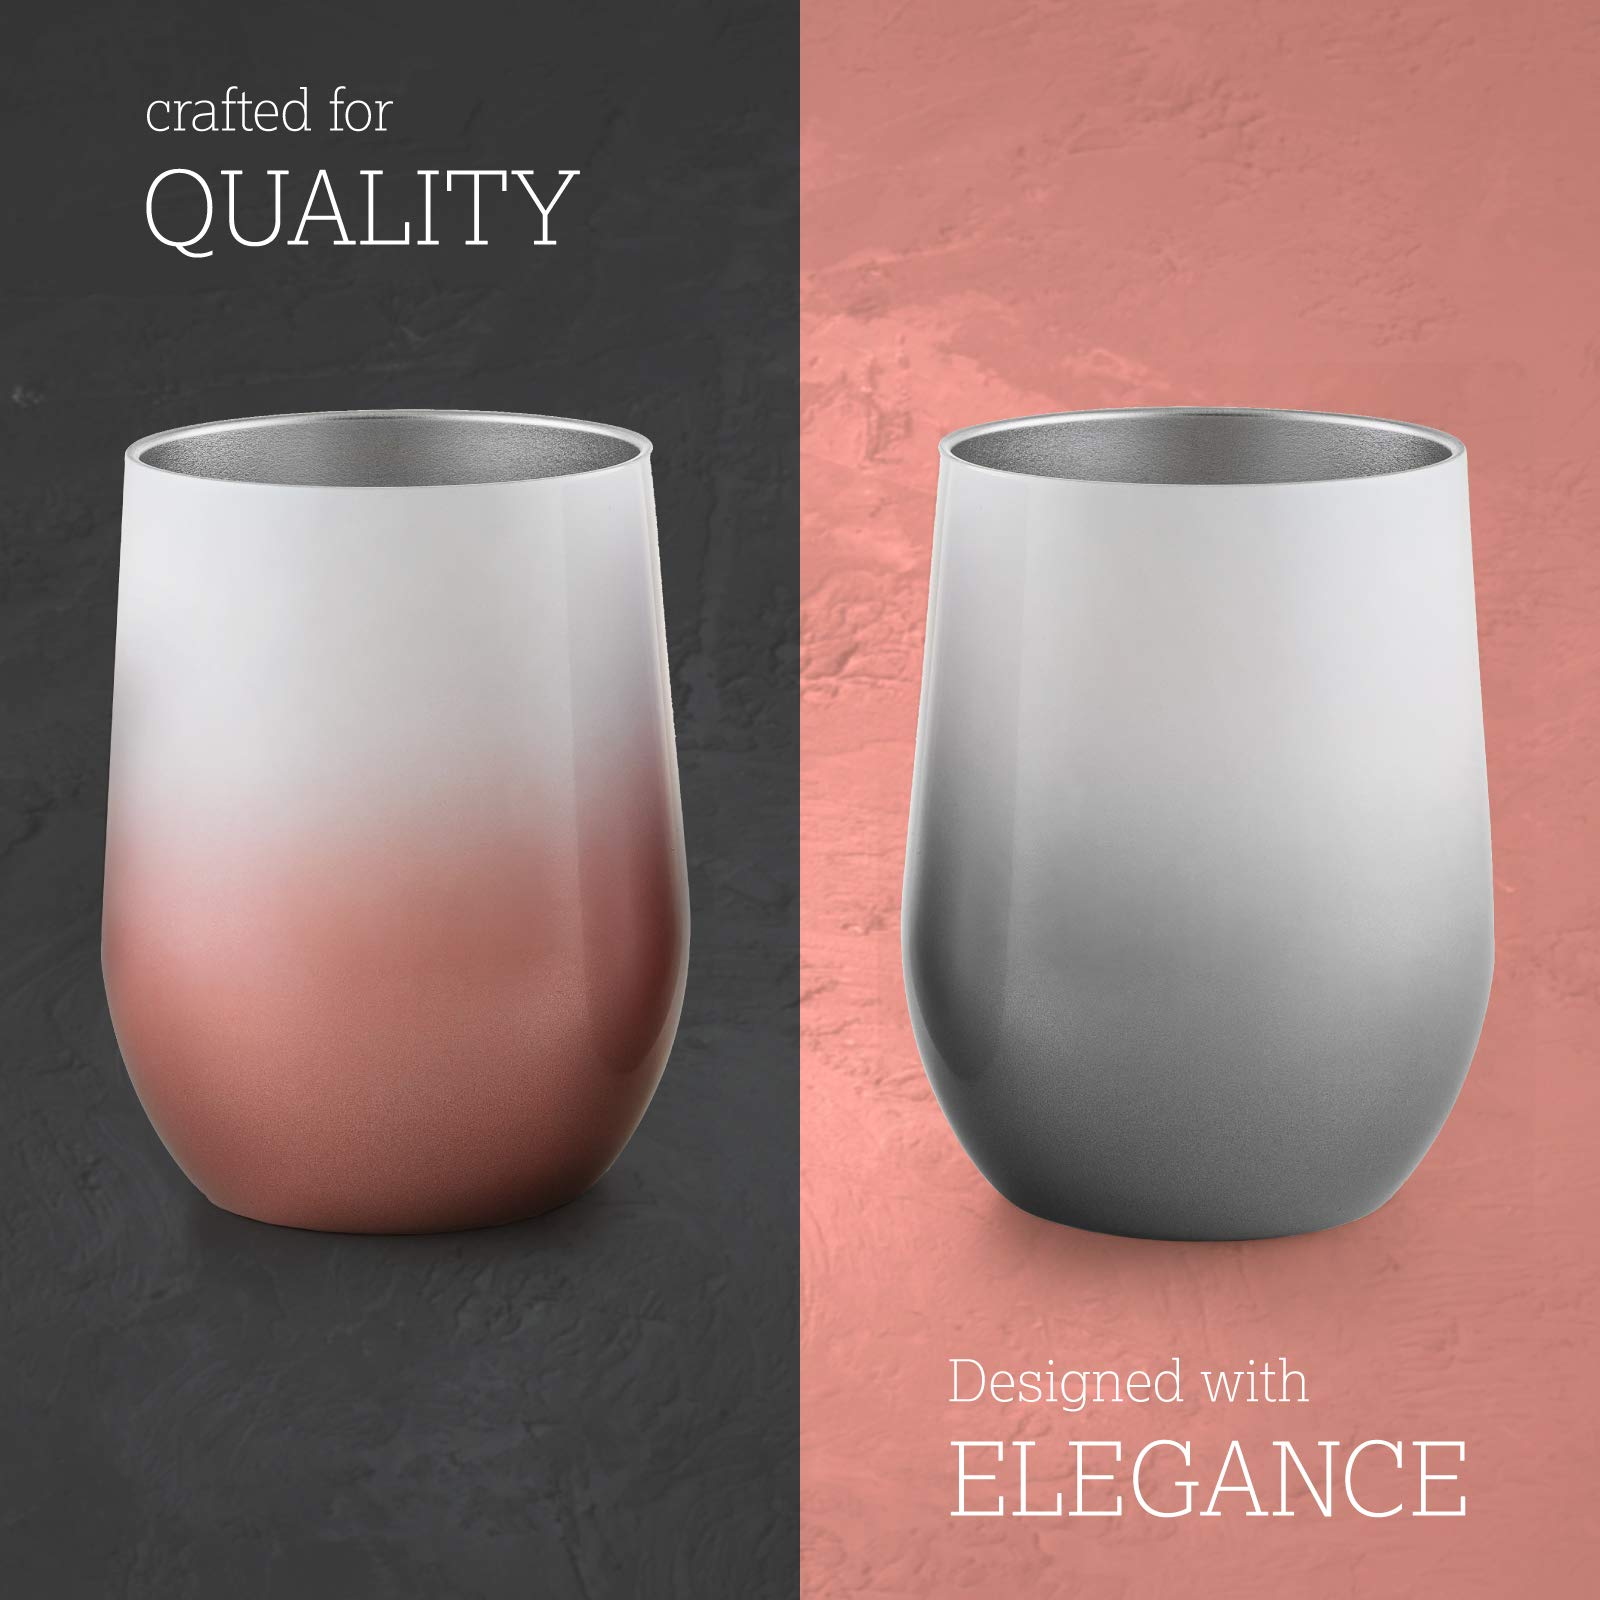 Wine Tumbler 12 oz Double-insulated Stemless Glass, 2 Sets Stainless Steel Tumblers Cup with Lids for Wine, Coffee, Drinks, Champagne, Cocktails by Your Happy Day (Image #4)